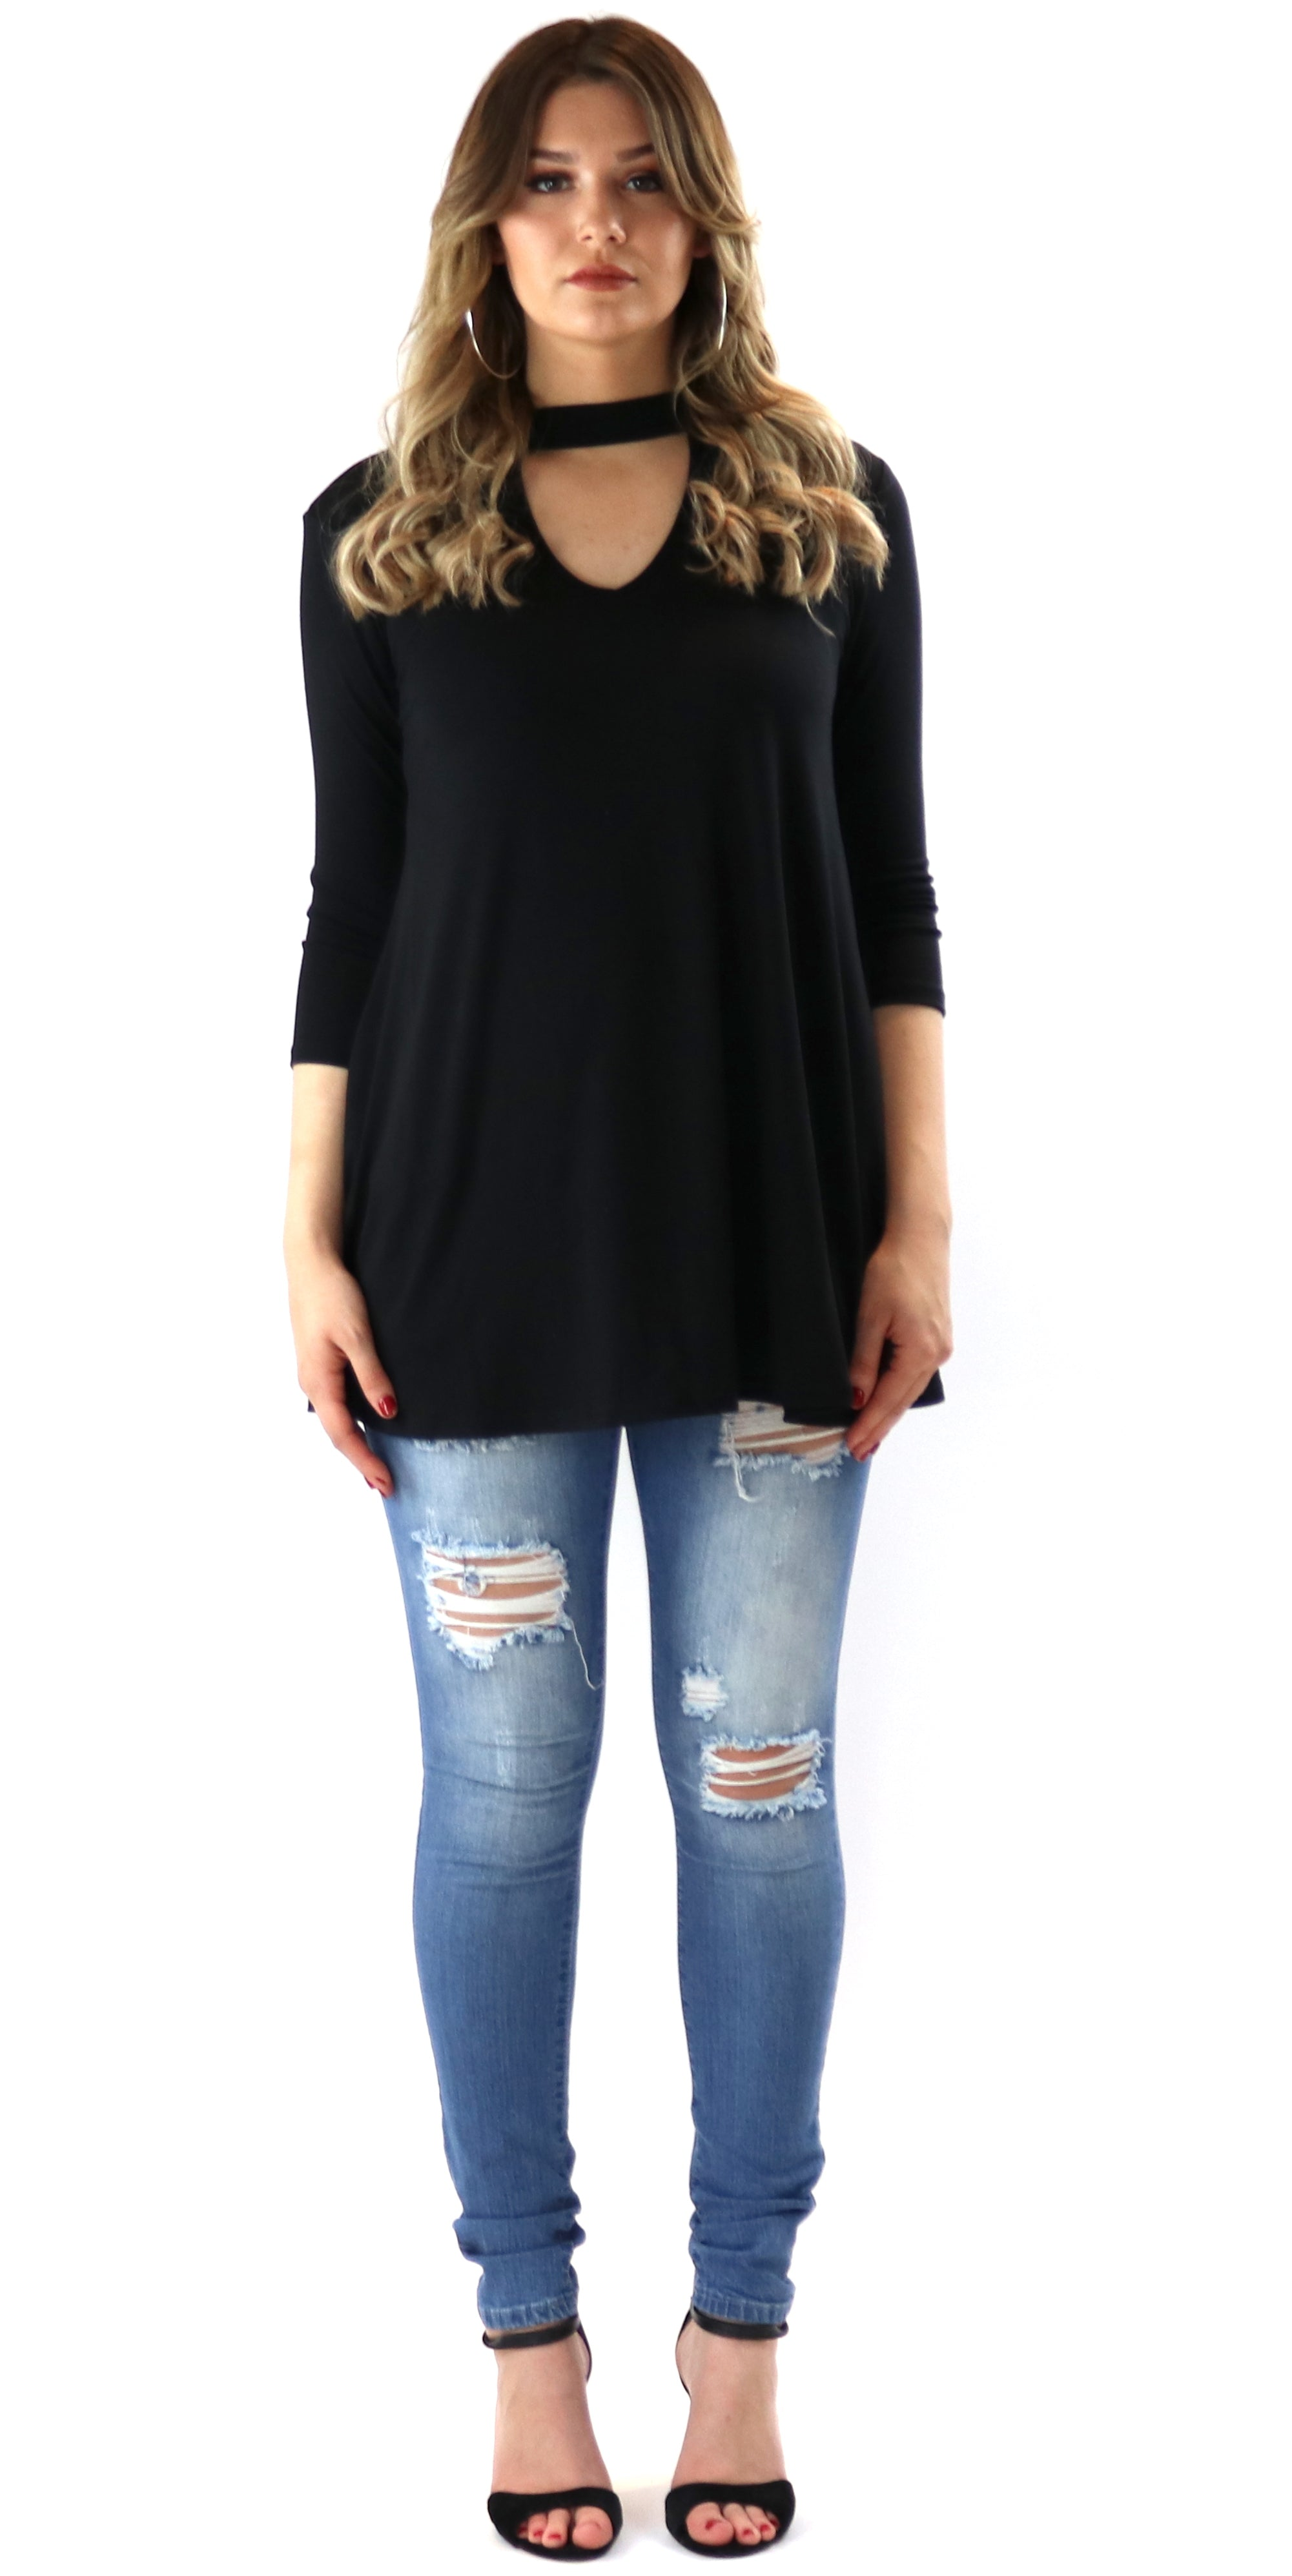 Neck Cut Out Top